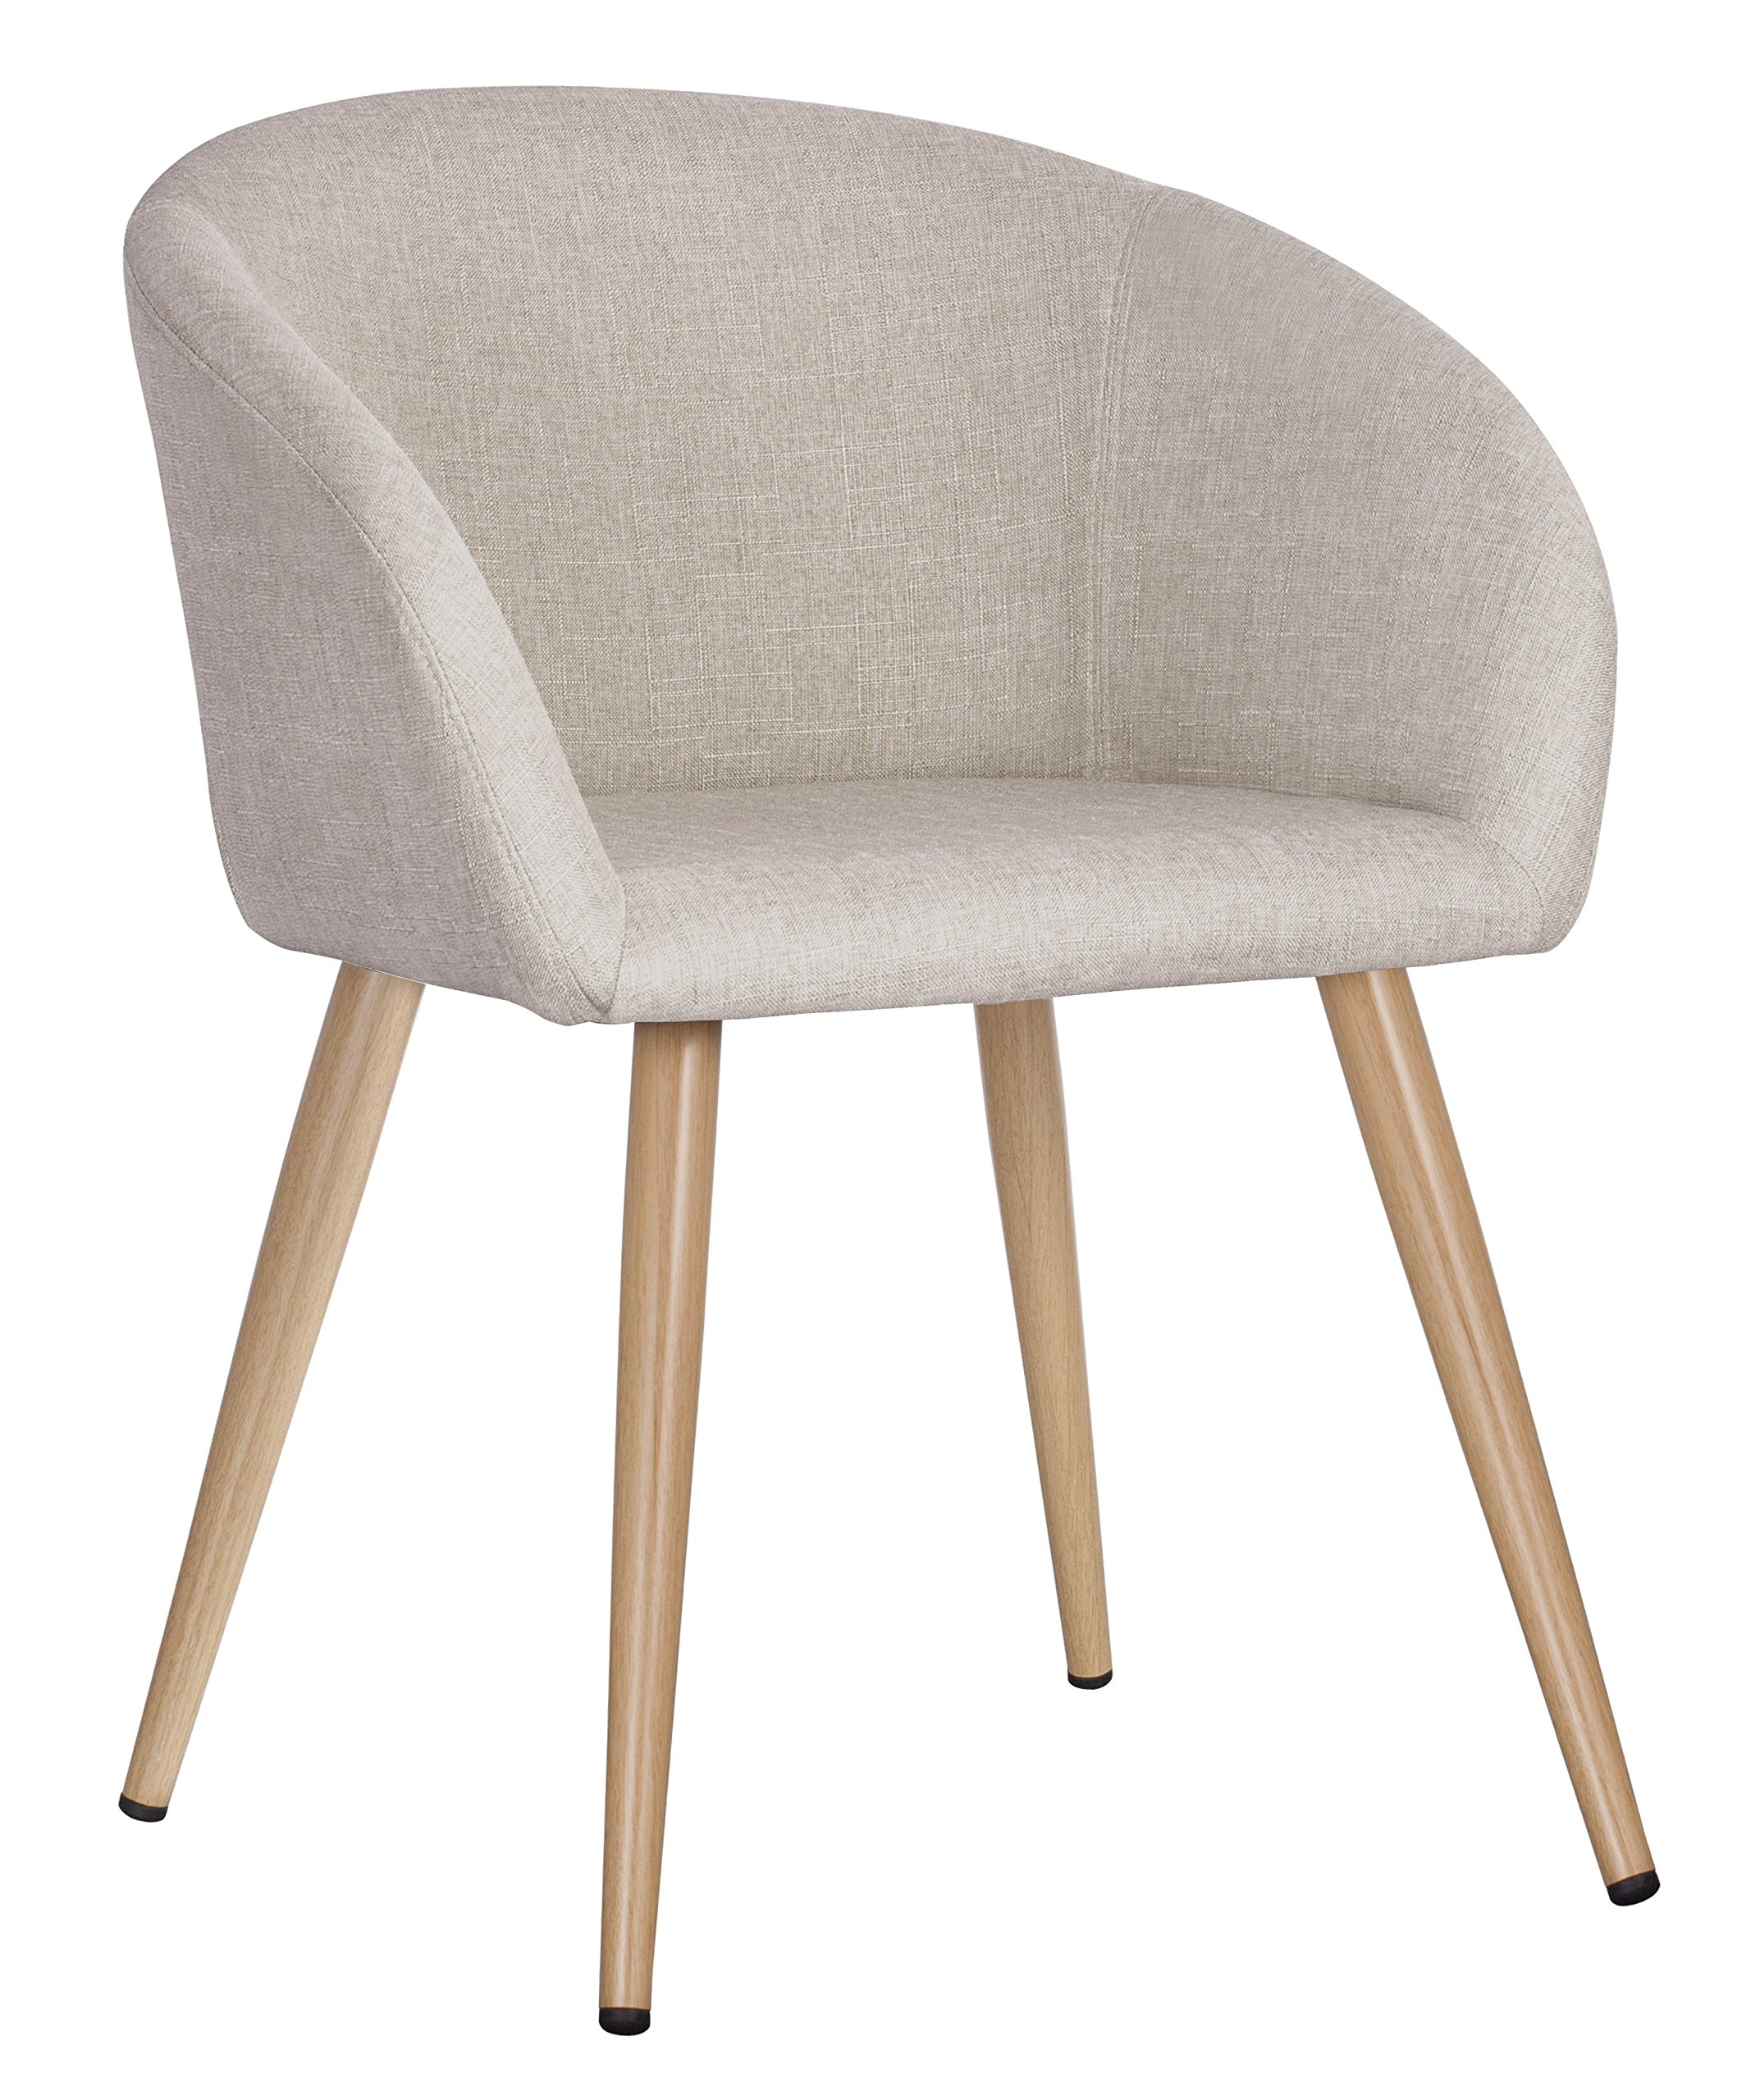 Duhome Fabric Home Office Leisure Accent Chair Living Room Reception Side Chair with Armrest (Oatmeal)